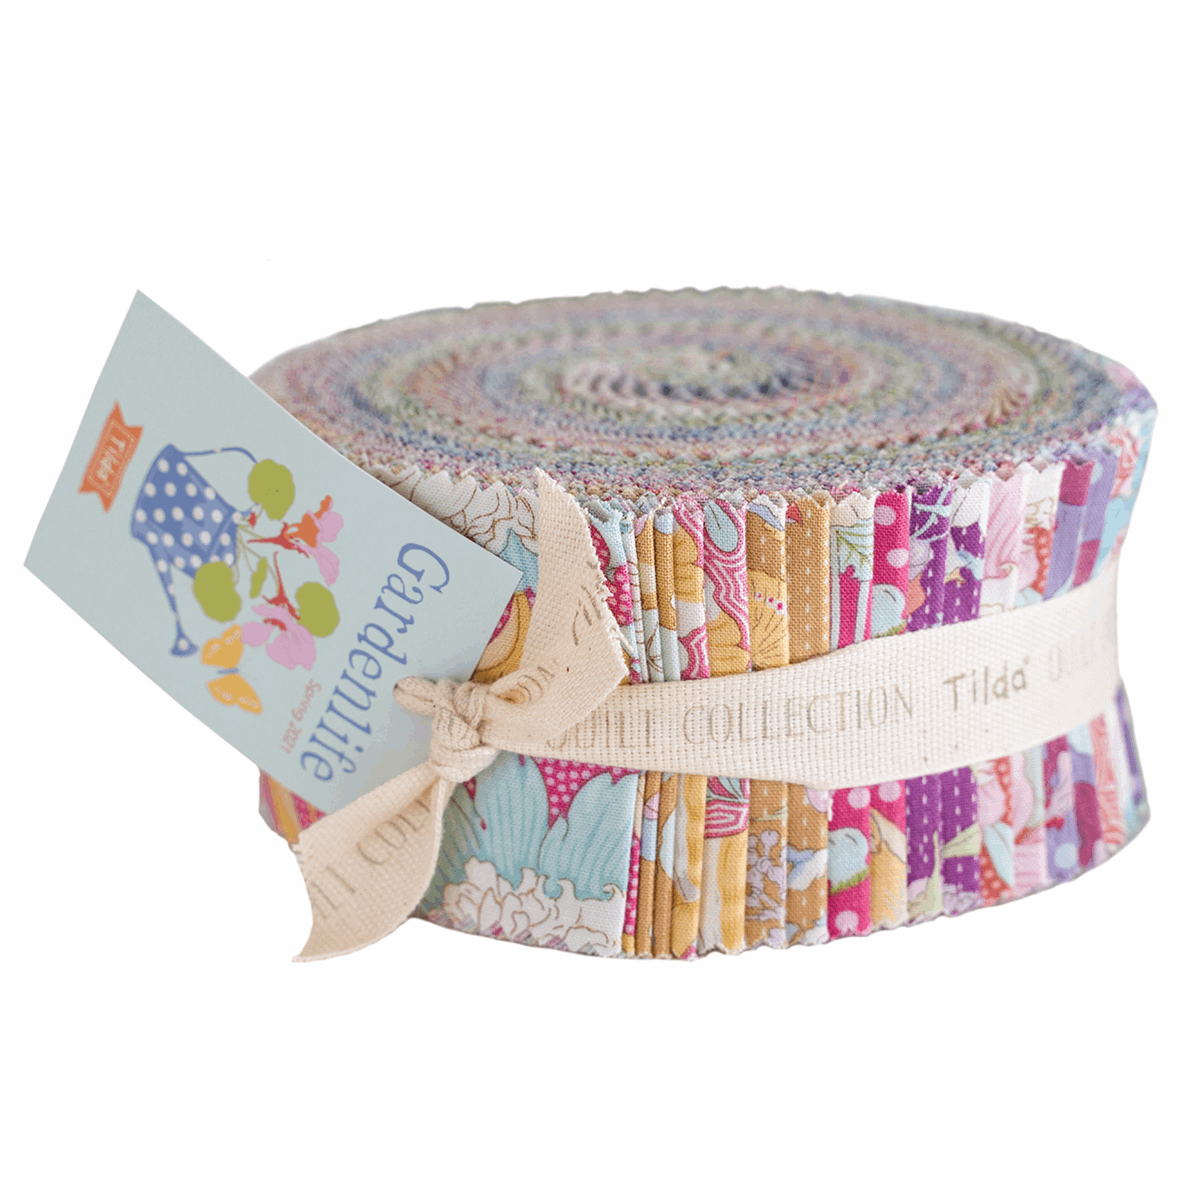 Gardenlife Fabric Roll 40 ea 2.5